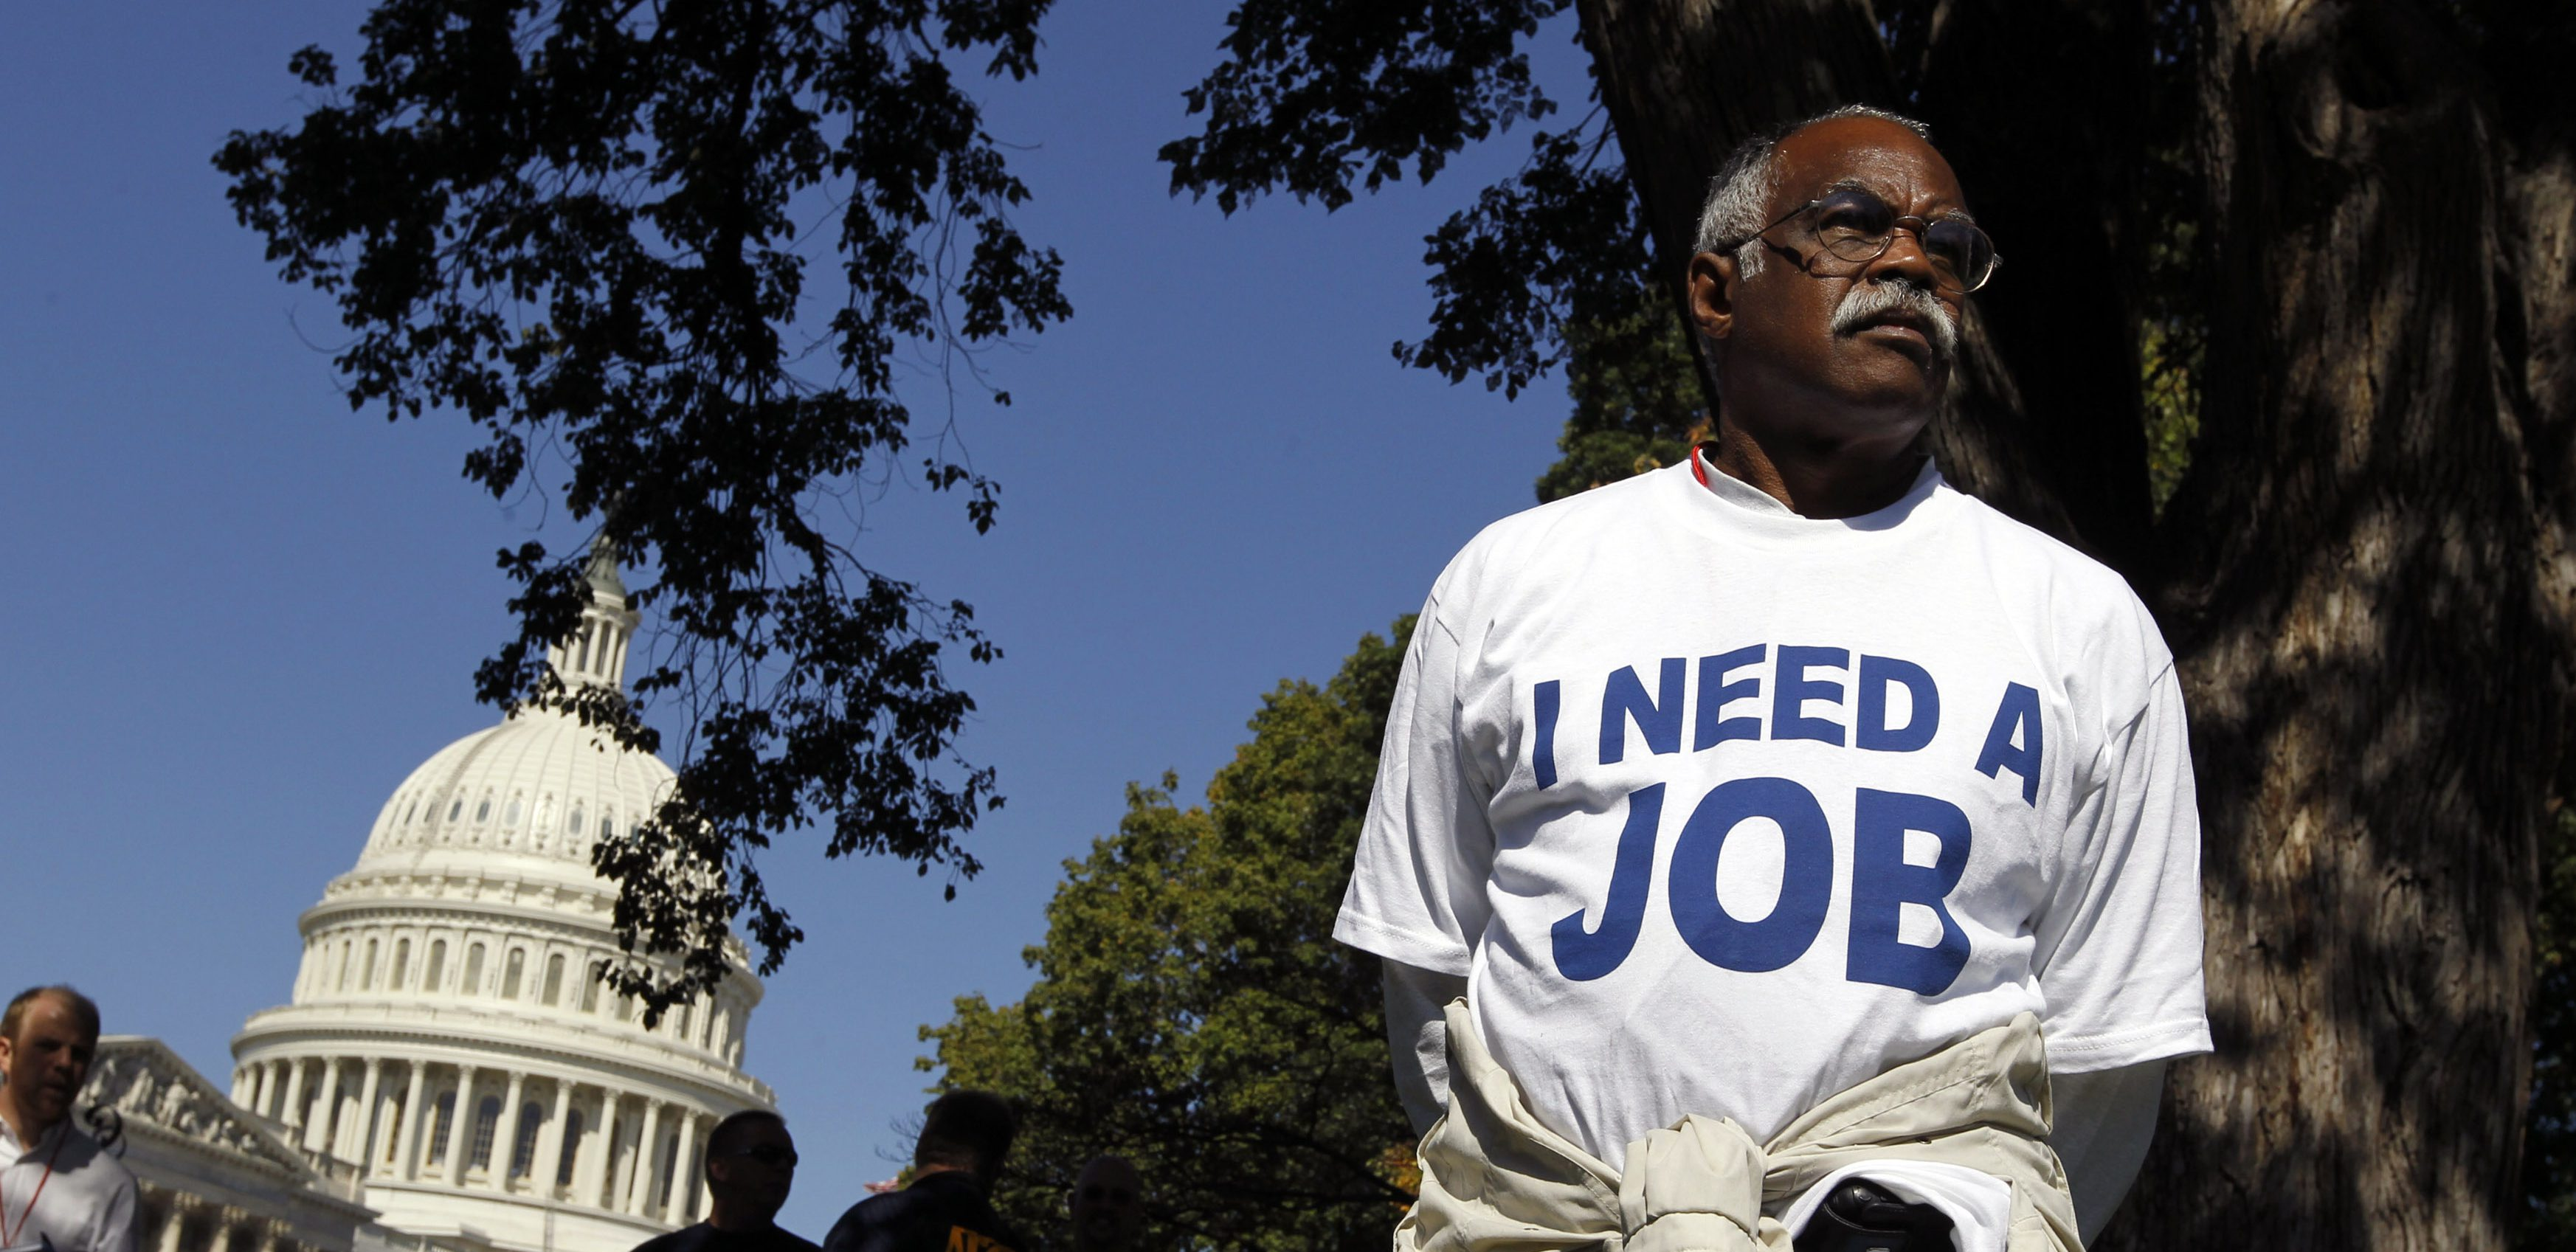 Mervin Sealy from Hickory, North Carolina, takes part in a protest rally outside the Capitol Building in Washington, October 5, 2011. Demonstrators were demanding that Congress create jobs, not make budget cuts during the protest.    REUTERS/Jason Reed   (UNITED STATES - Tags: POLITICS BUSINESS CIVIL UNREST) - RTR2S9AW